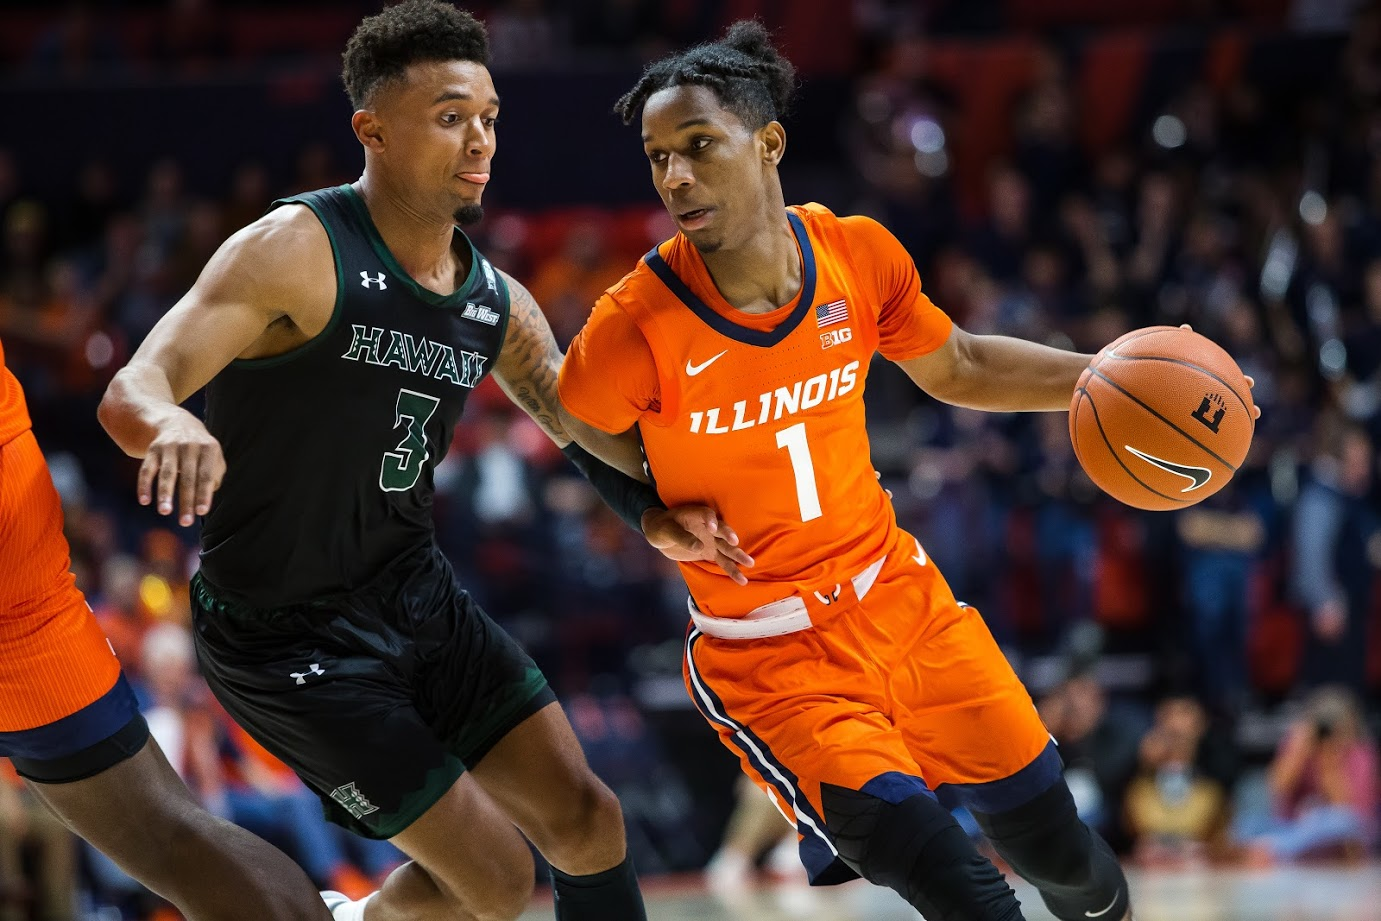 Trent Frazier drives past a Hawaii defender at the Illini's game vs Hawaii at the State Farm Center on Monday.